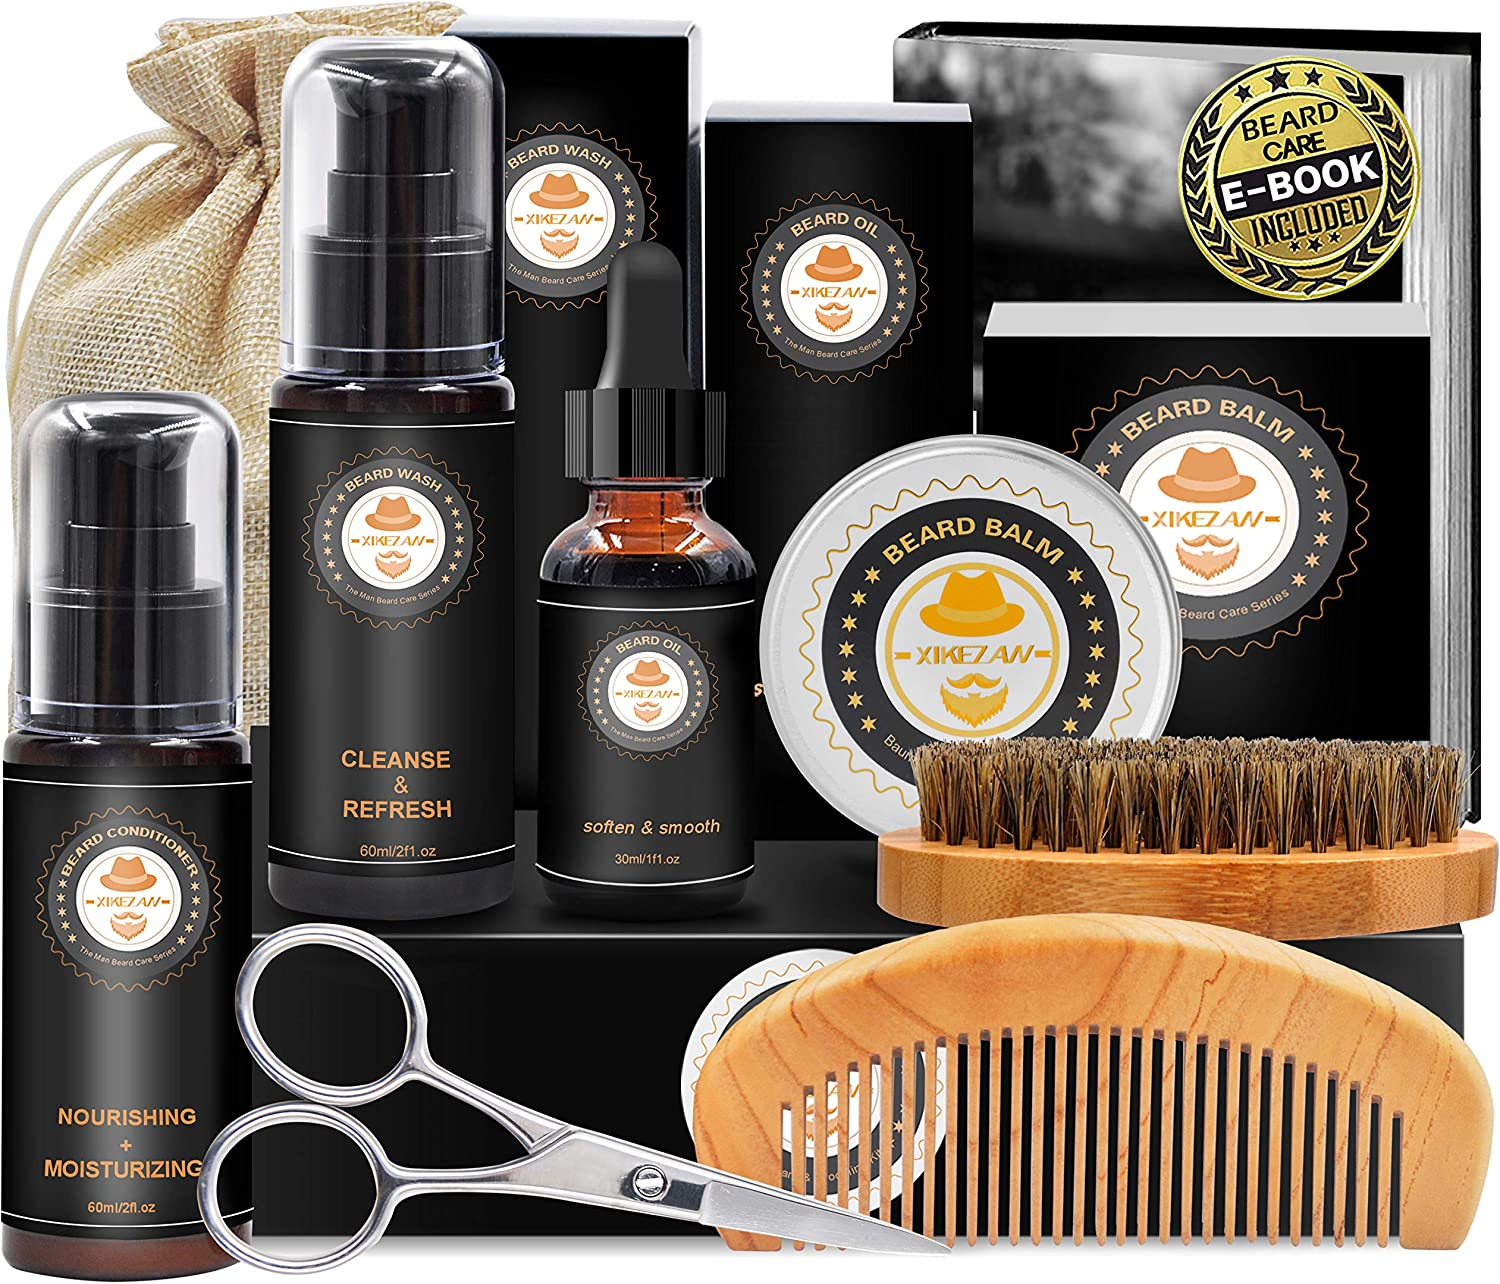 Upgraded Beard Grooming Kit w/Beard Baubles,Beard Shaper,Beard Growth Oil,Beard Balm,Beard Shampoo/Wash,Beard Brush,Beard Comb,Beard Scissors,Storage Bag,E-Book,Beard Care Grooming Daddy Gifts for Men